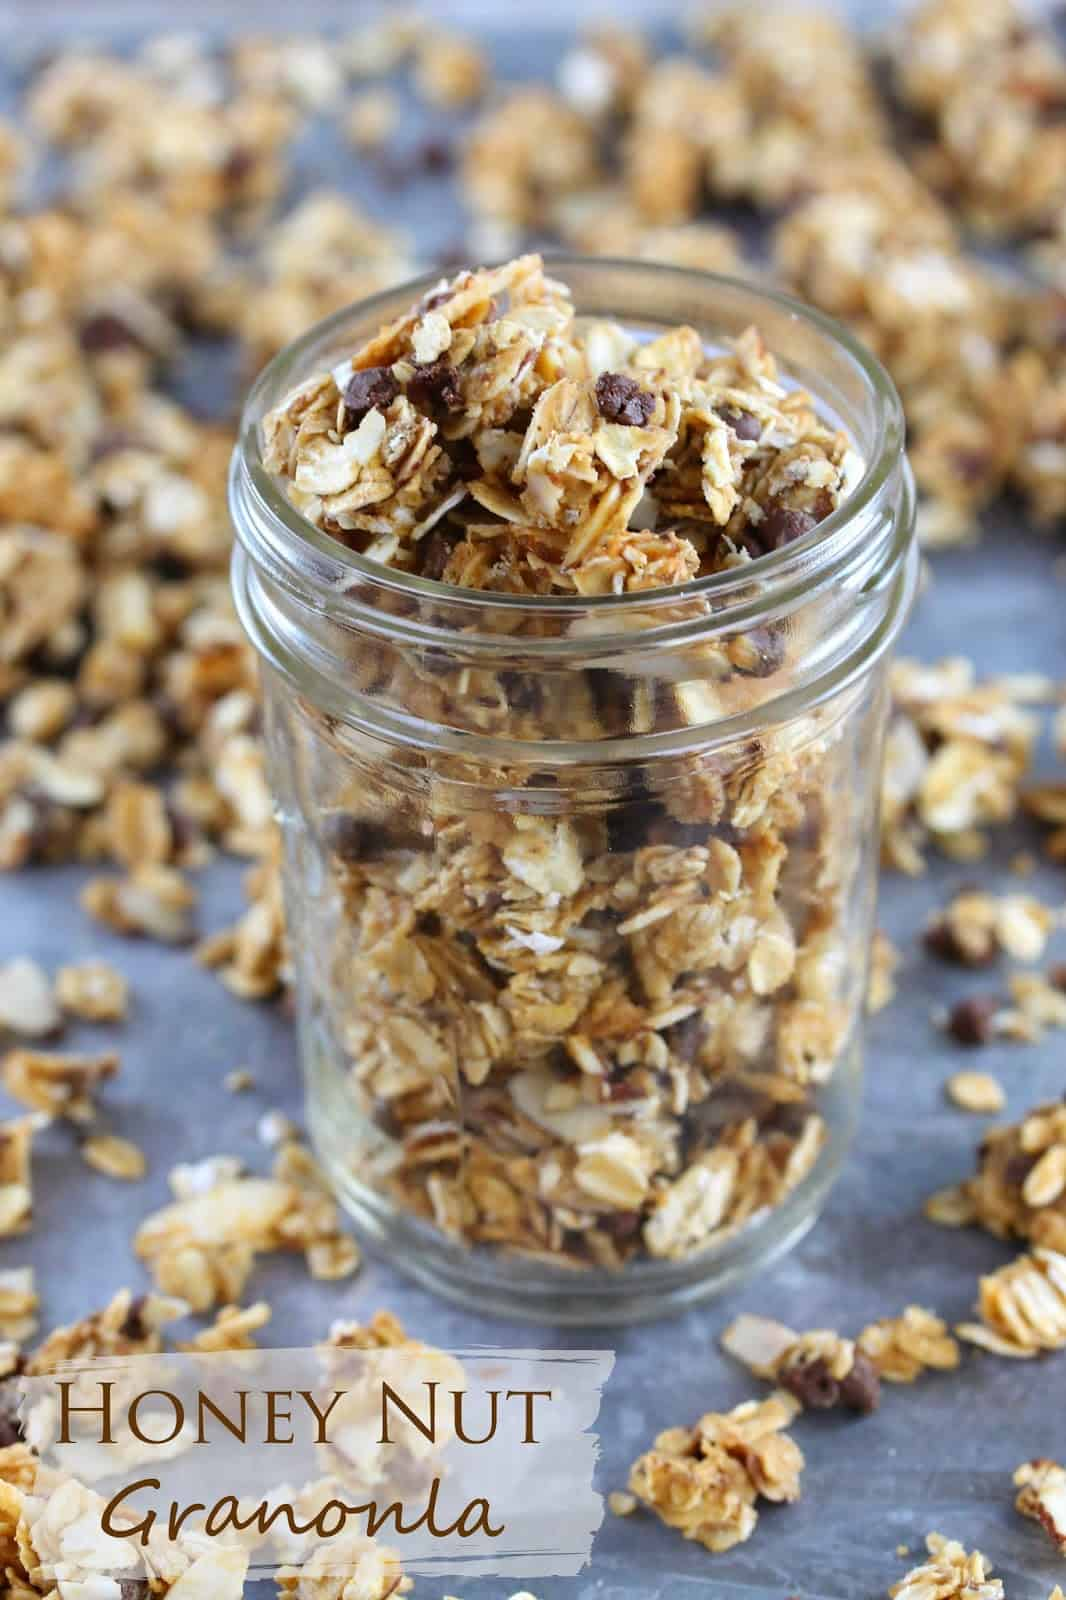 Honey Nut Granola: clusters of granola made from oats, honey, peanut butter, slivered almonds, chocolate chips and other simple ingredients fill a mason jar.